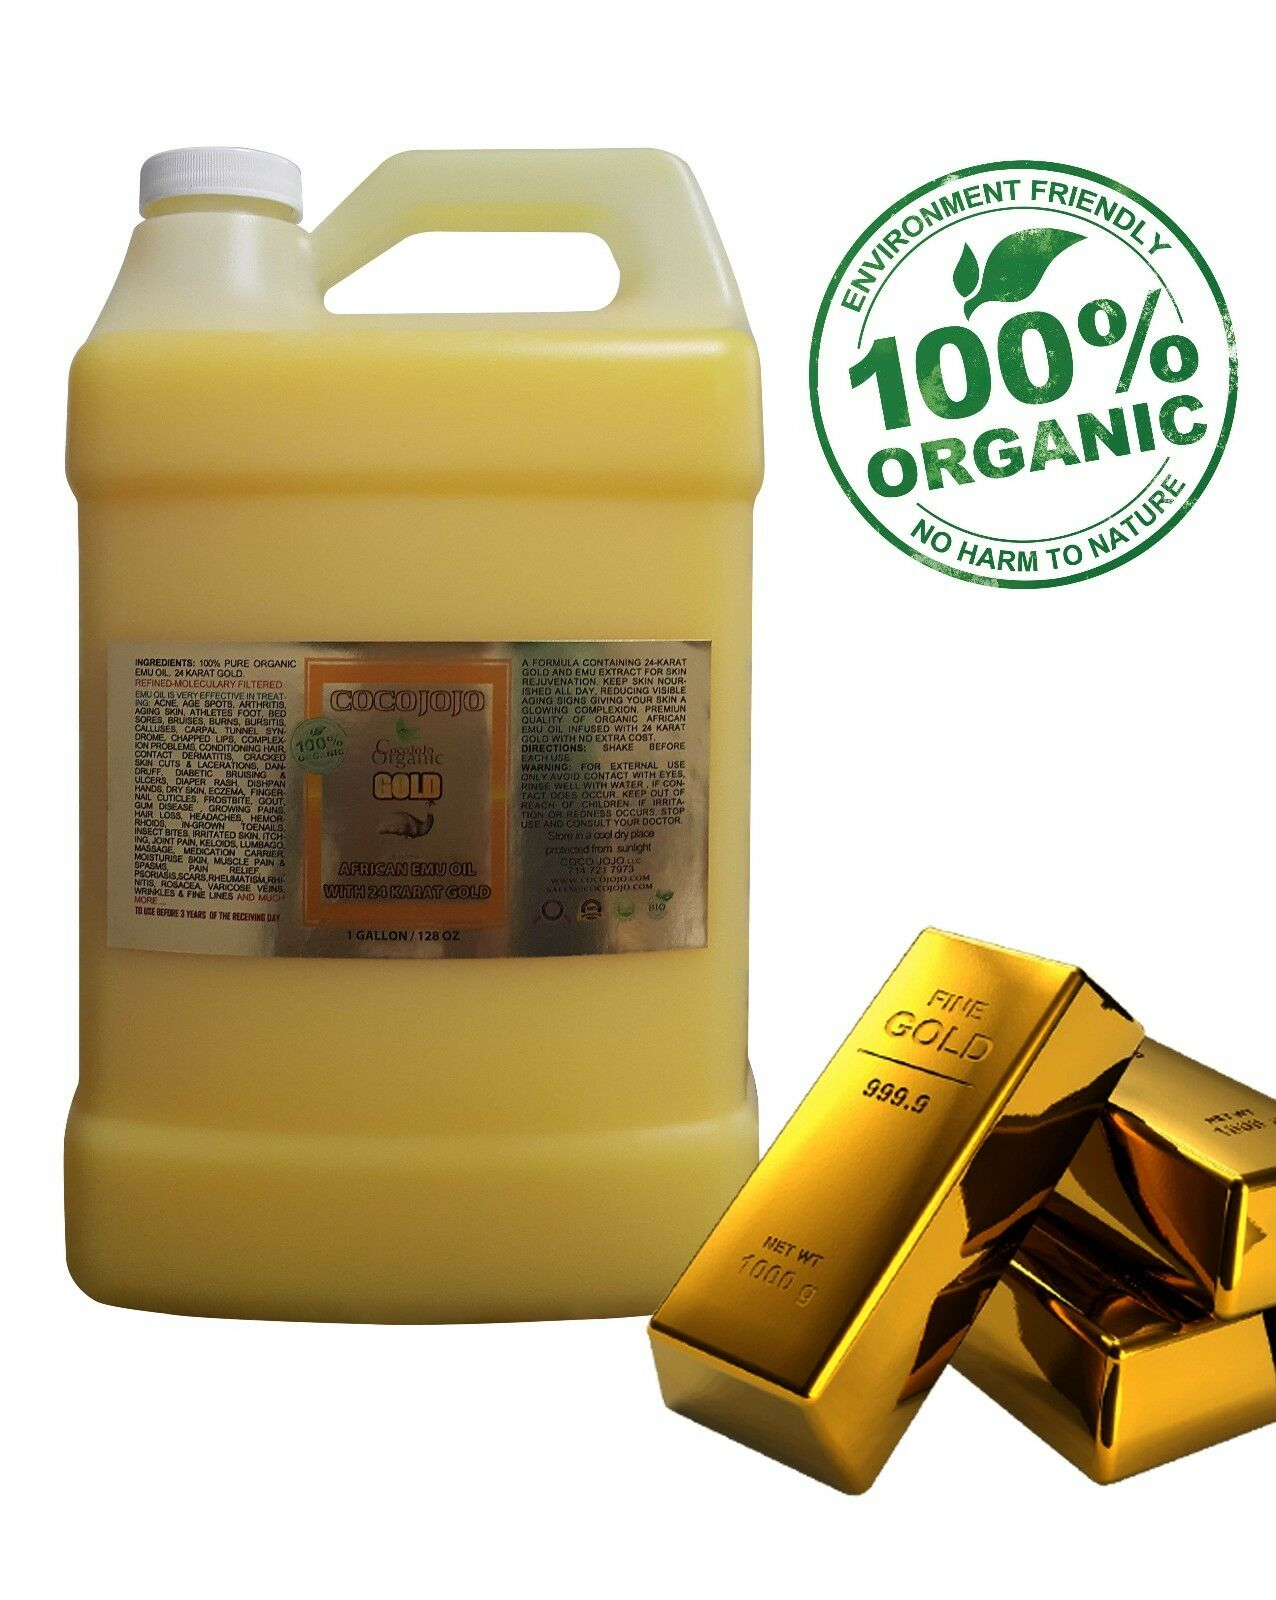 AFRICAN ORGANIC 100% PURE NATURAL EMU OIL FULLY REFINED ...